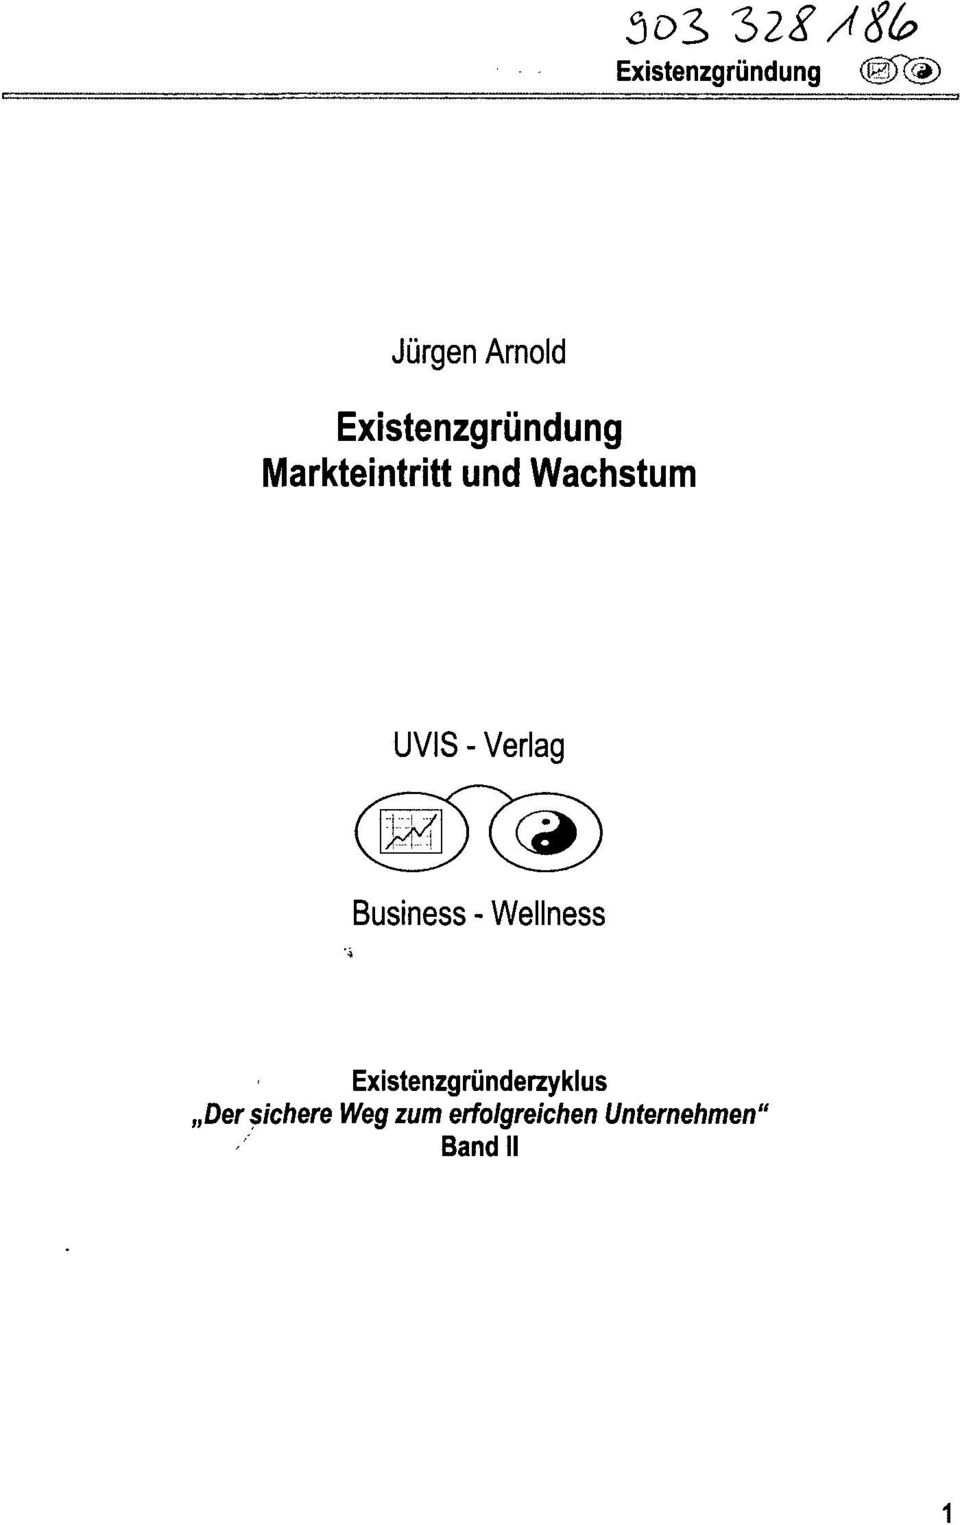 Wachstum Business - Wellness